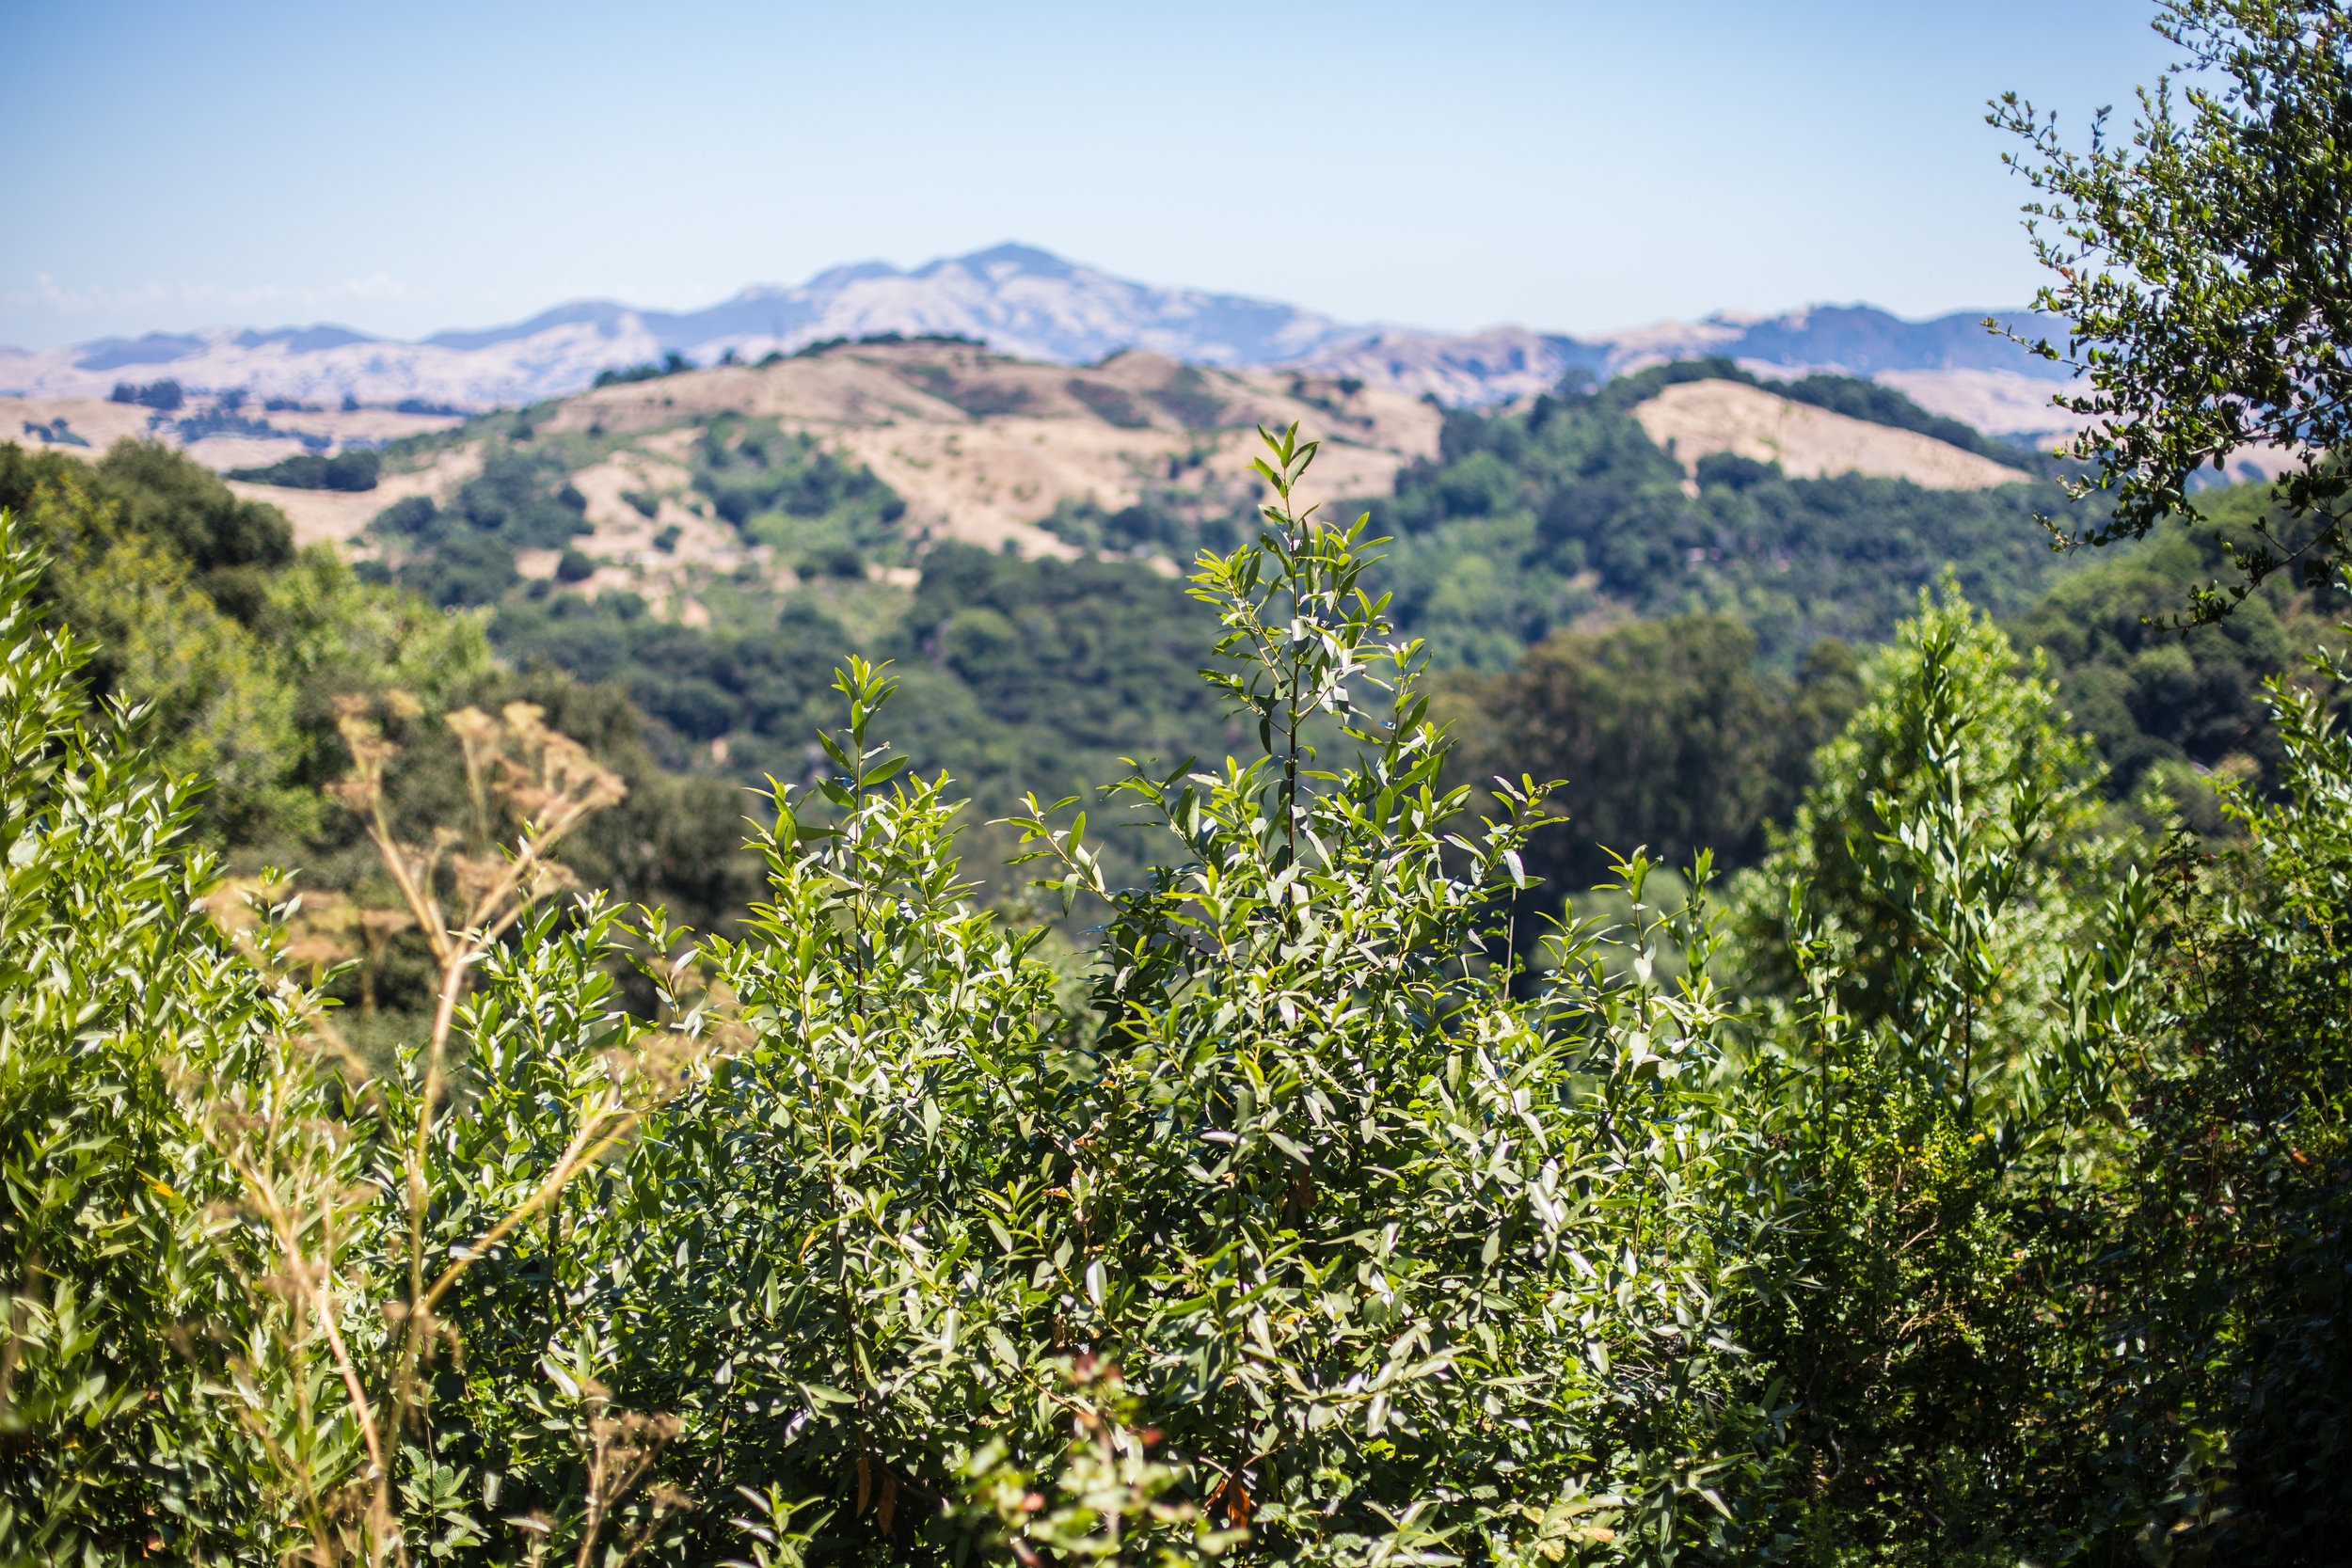 These California hills. I am amazed at how many parks and reserves that are here for a day hike. This was so peaceful and much needed after work! My mood is always lifted after a little bit of nature time.